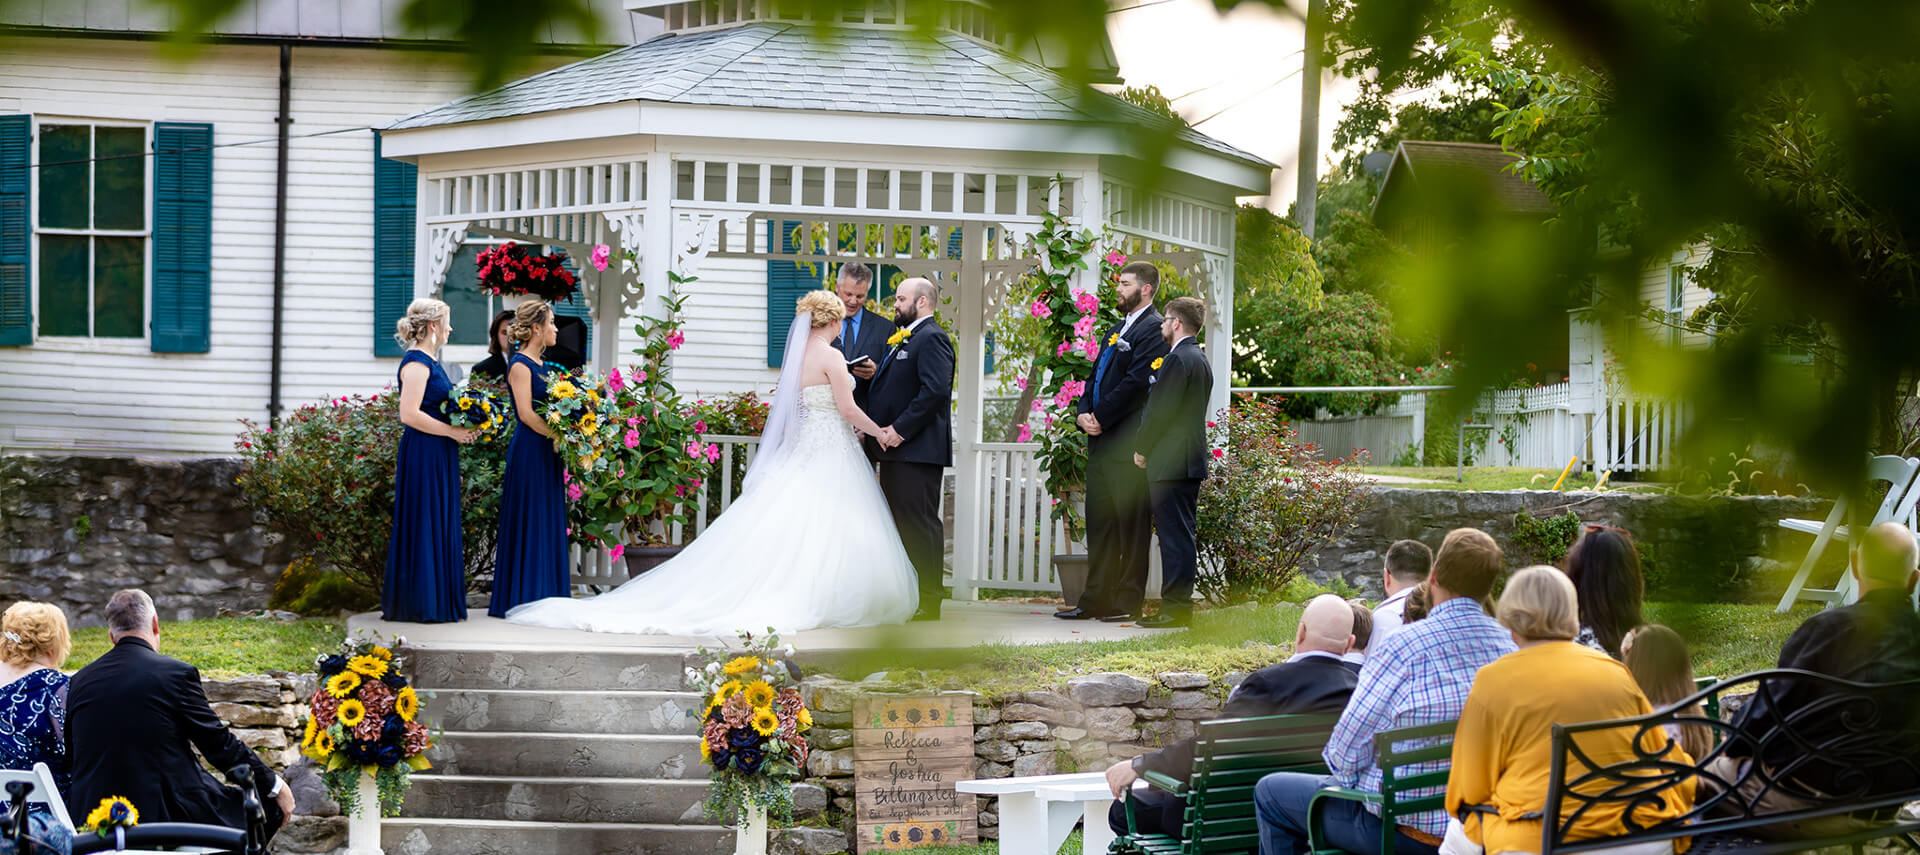 Bride in front of old church painted white with dark shutters